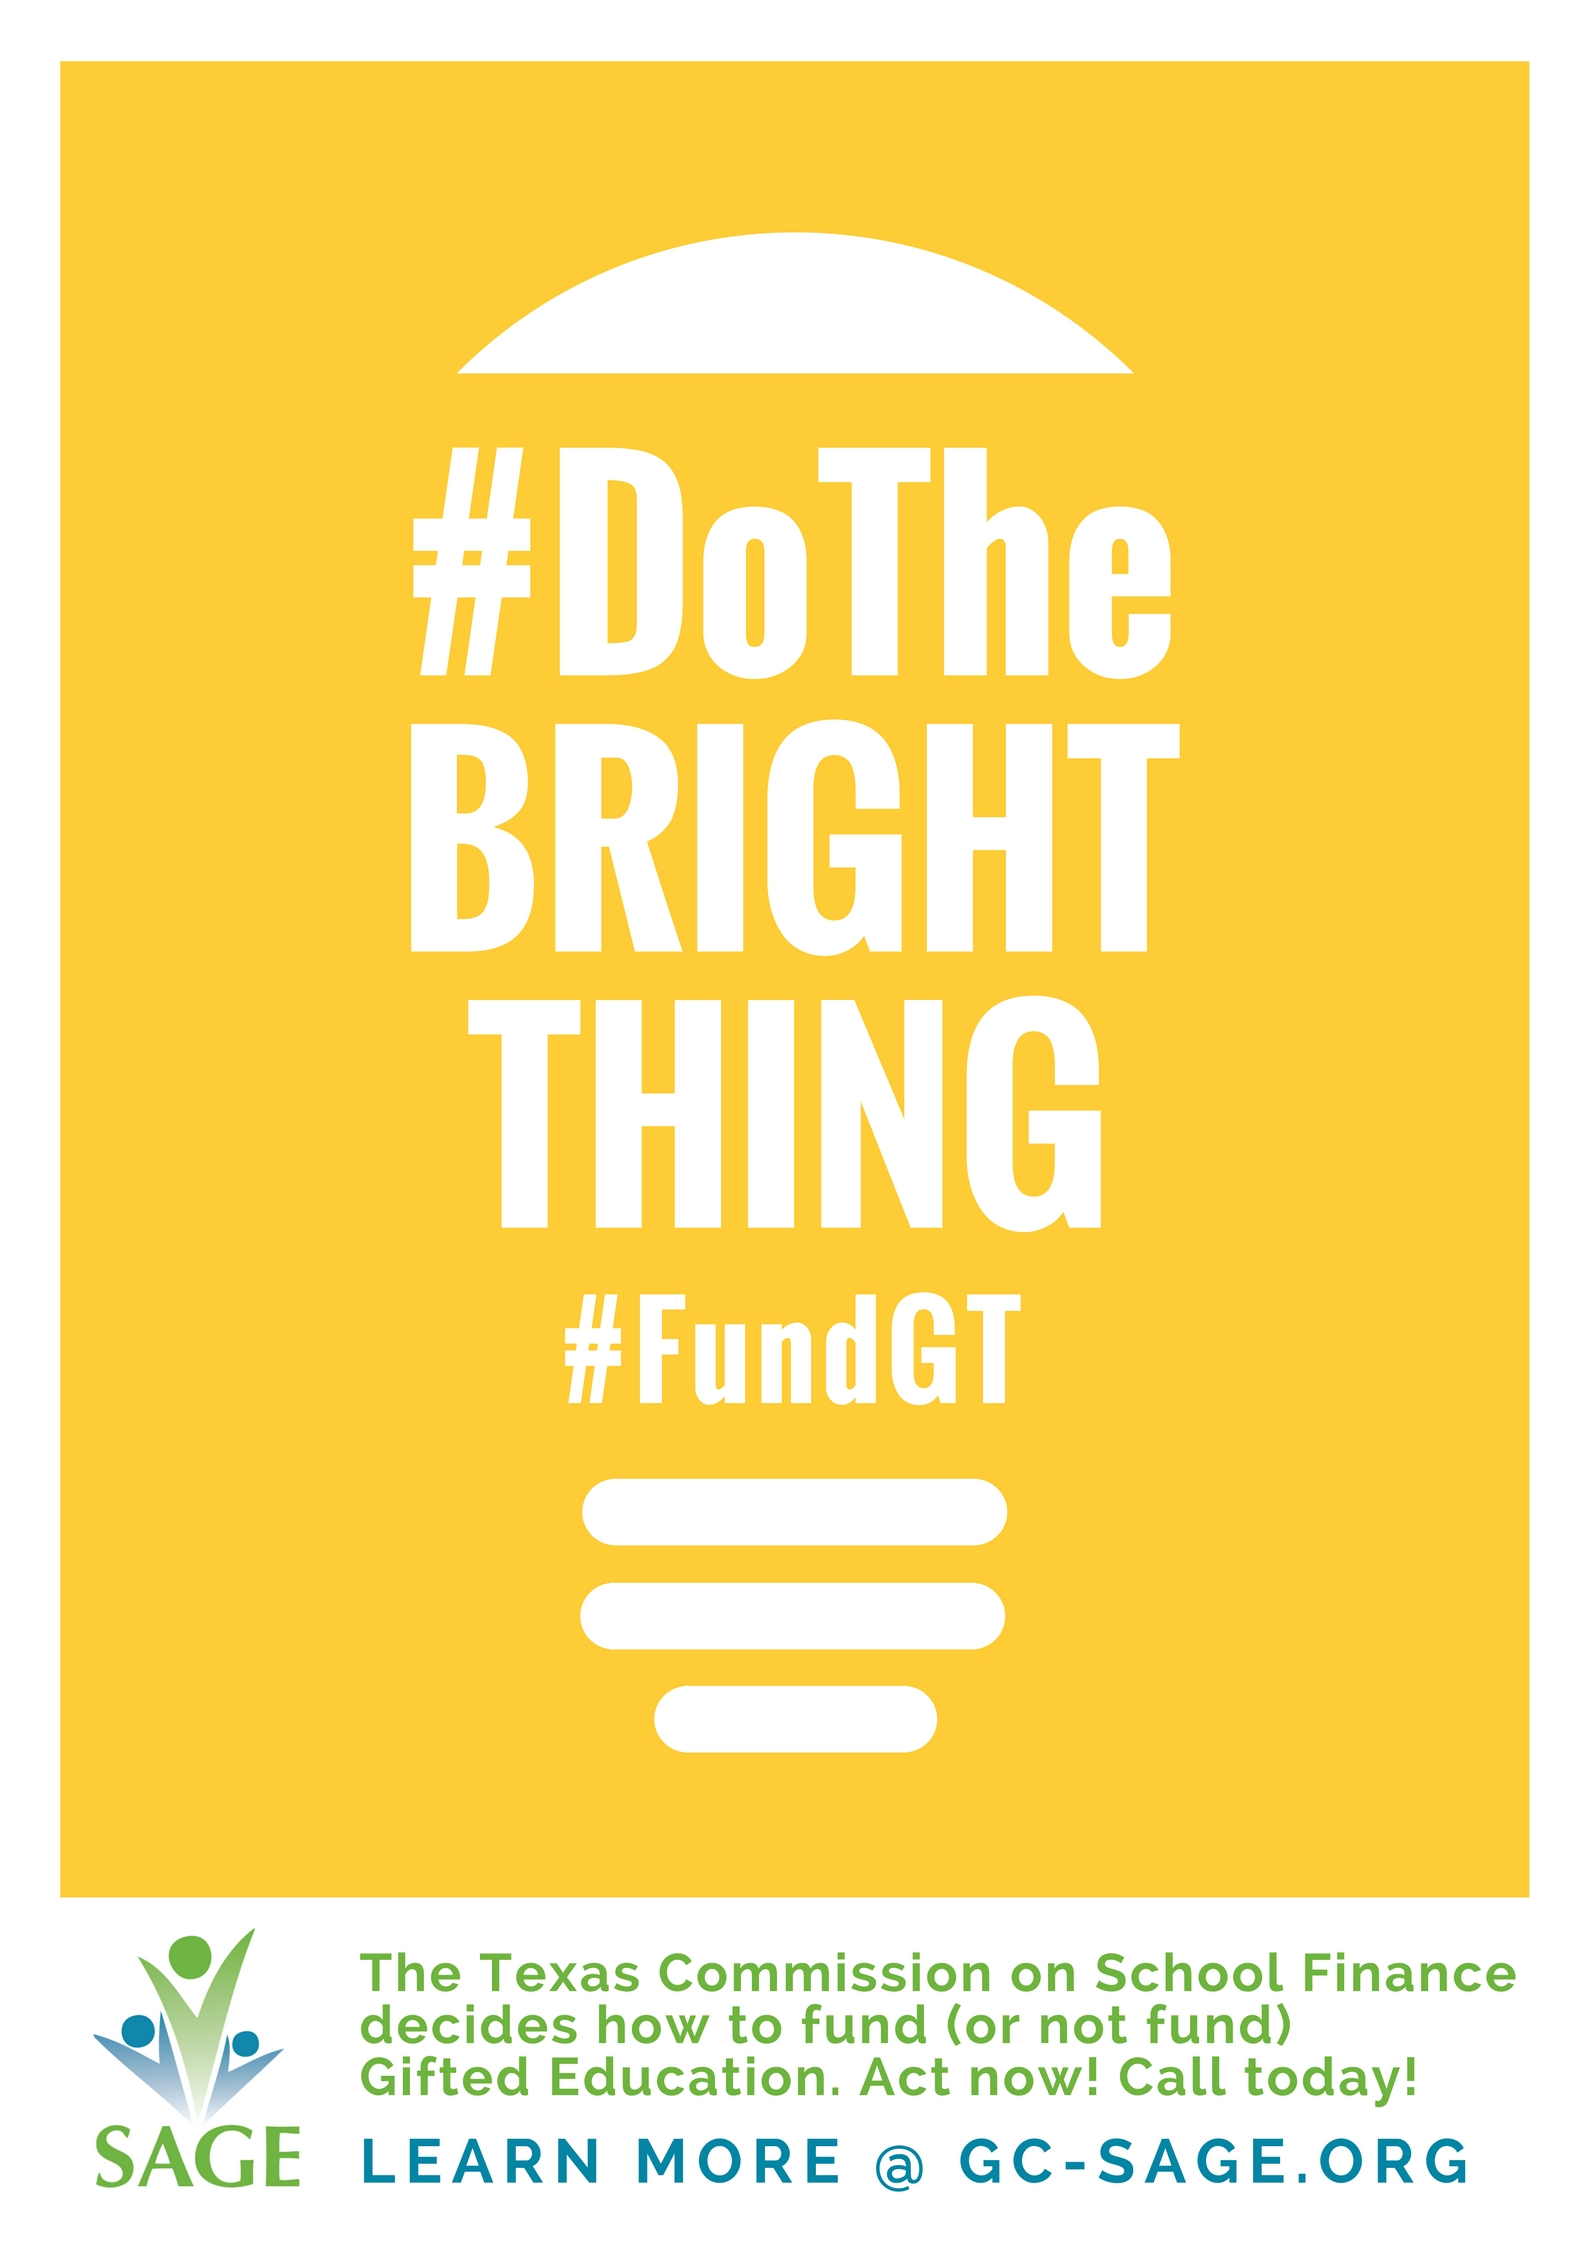 Call to Action: Contact your legislator about gifted funding in the state budget